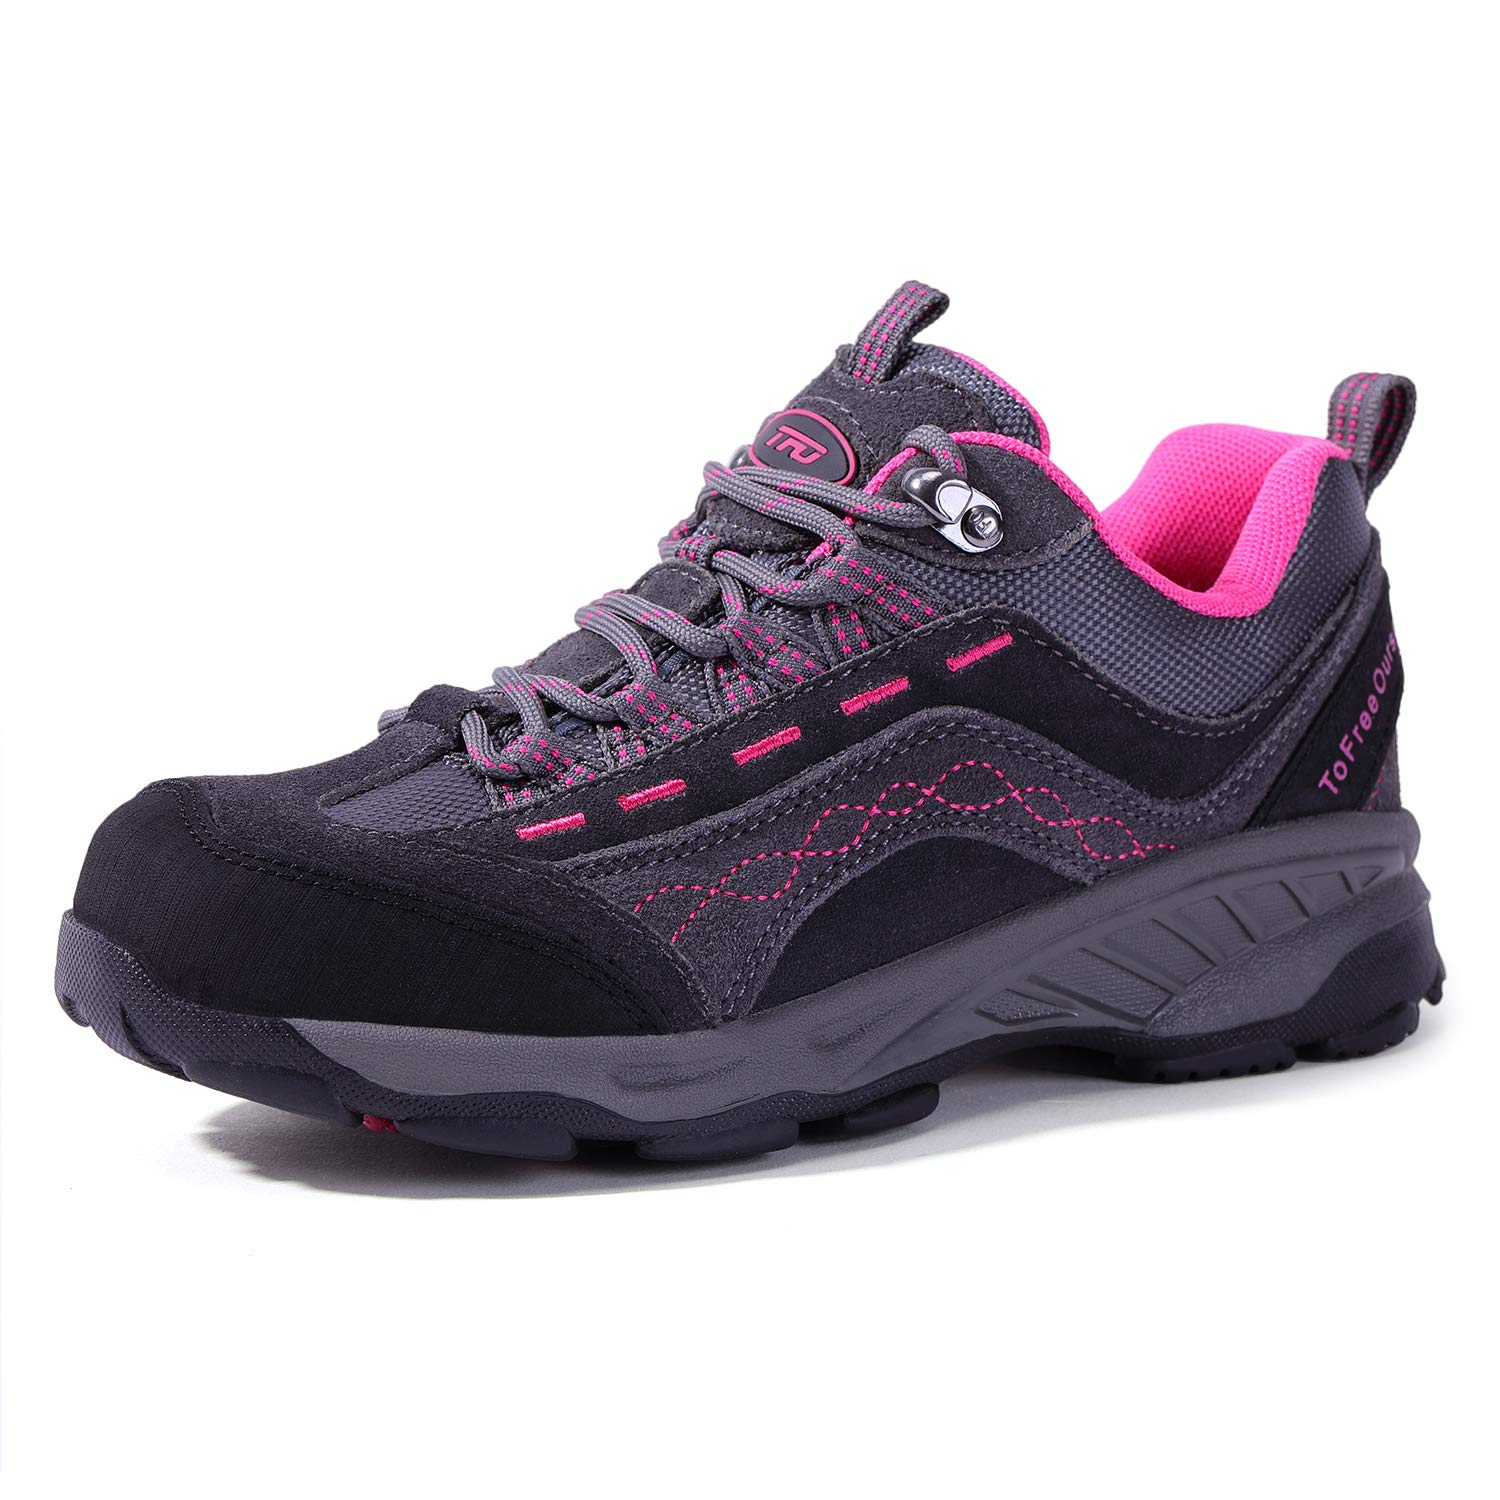 TFO Women's Air Cushion Hiking Shoe Breathable Running Outdoor Sports Trail Trekking Sneaker (5.5 M US, Gray/Rose) by TFO